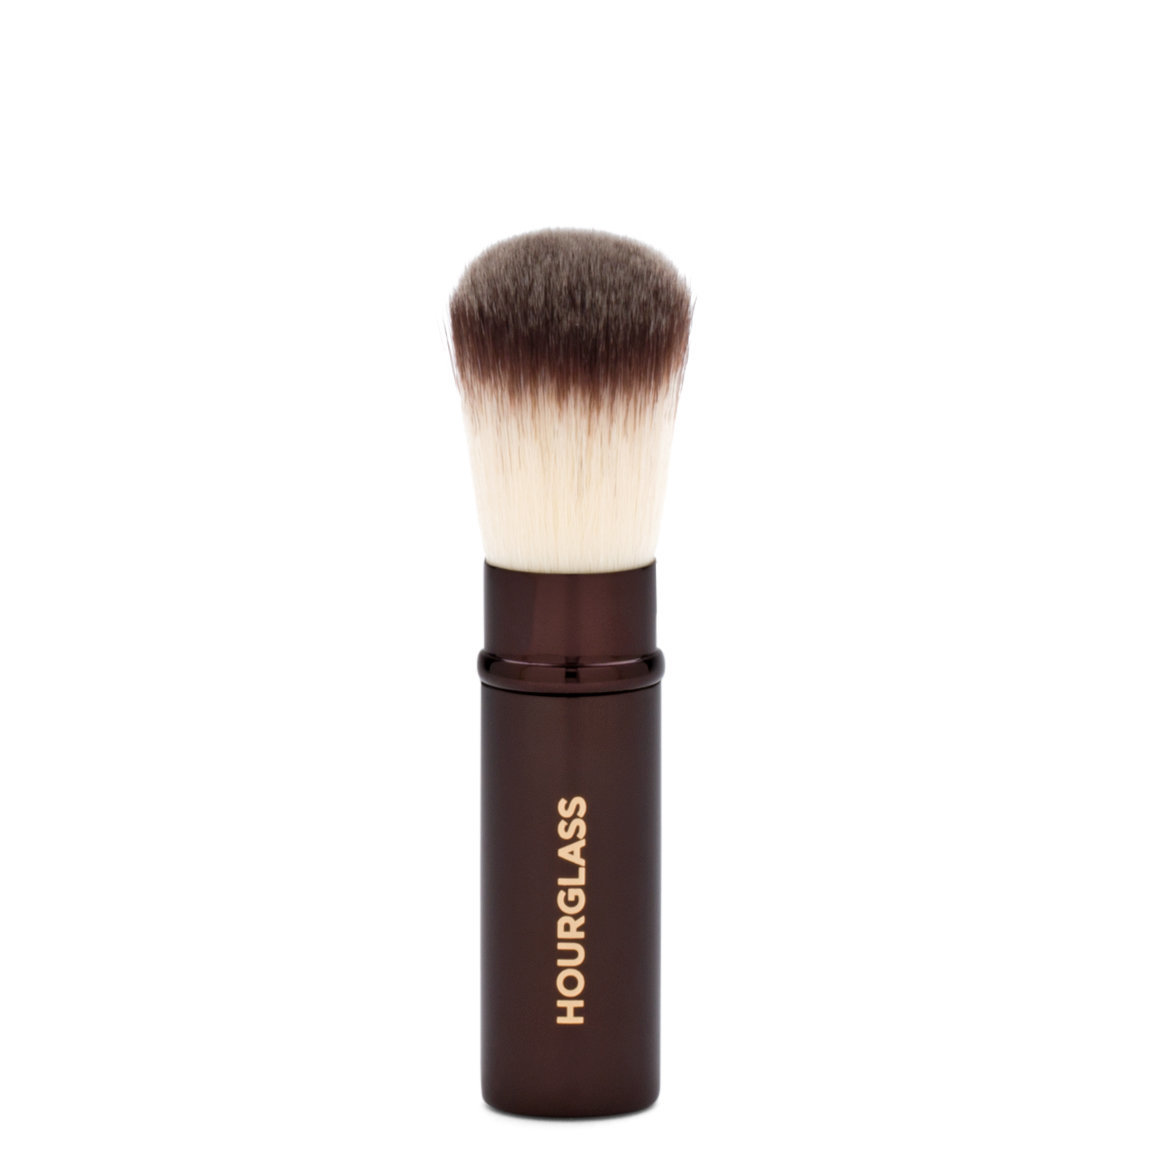 Hourglass Retractable Foundation Brush product smear.